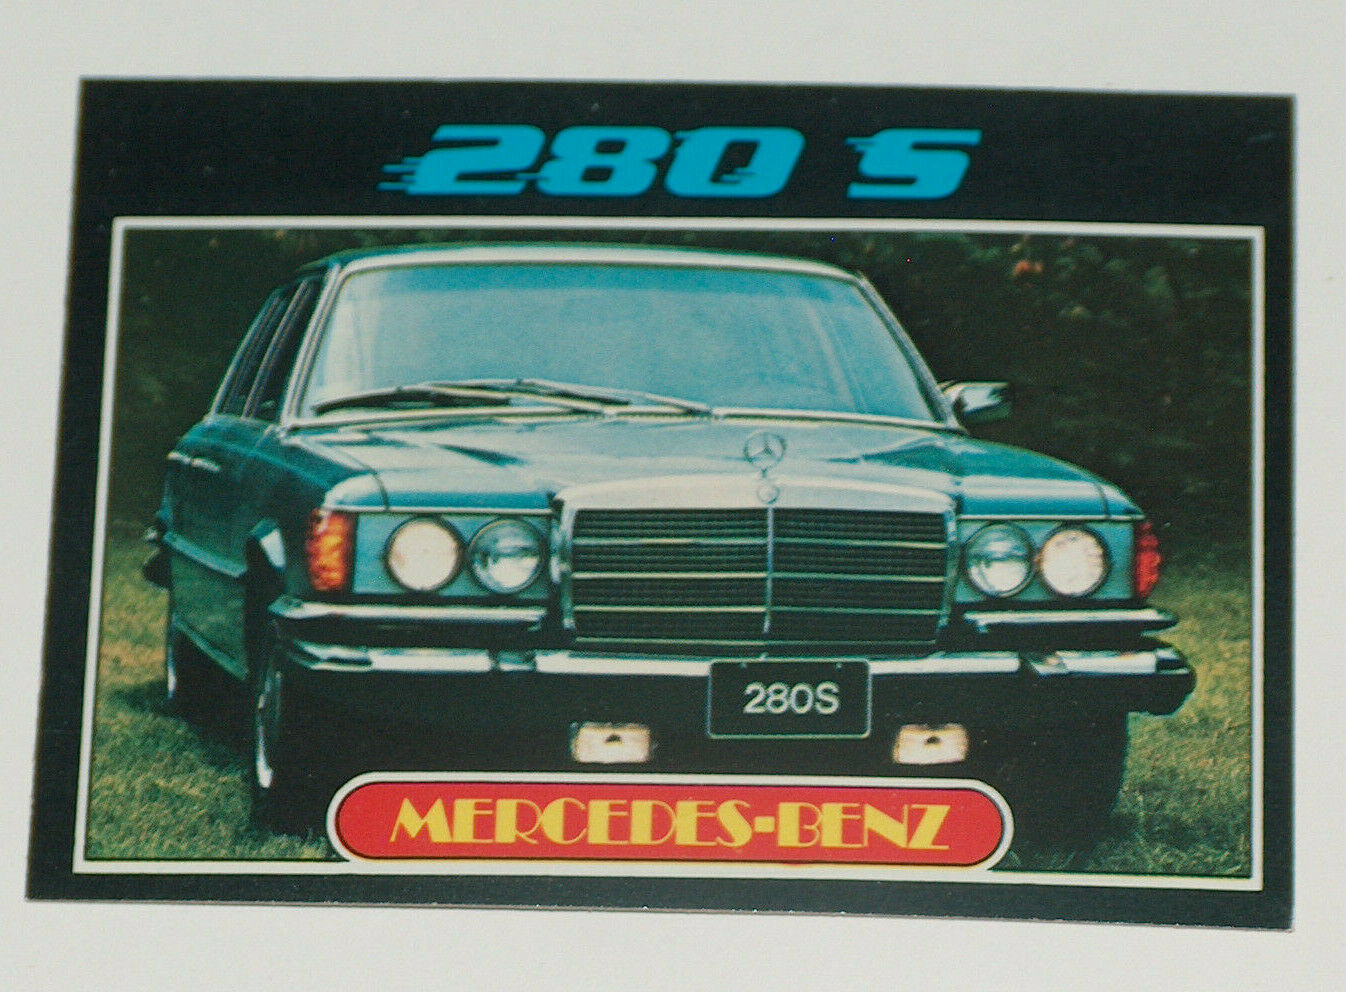 Primary image for 1976 Topps Autos of 1977 Mercedes Benz 280 S Car Card #74 VG-EX Condition